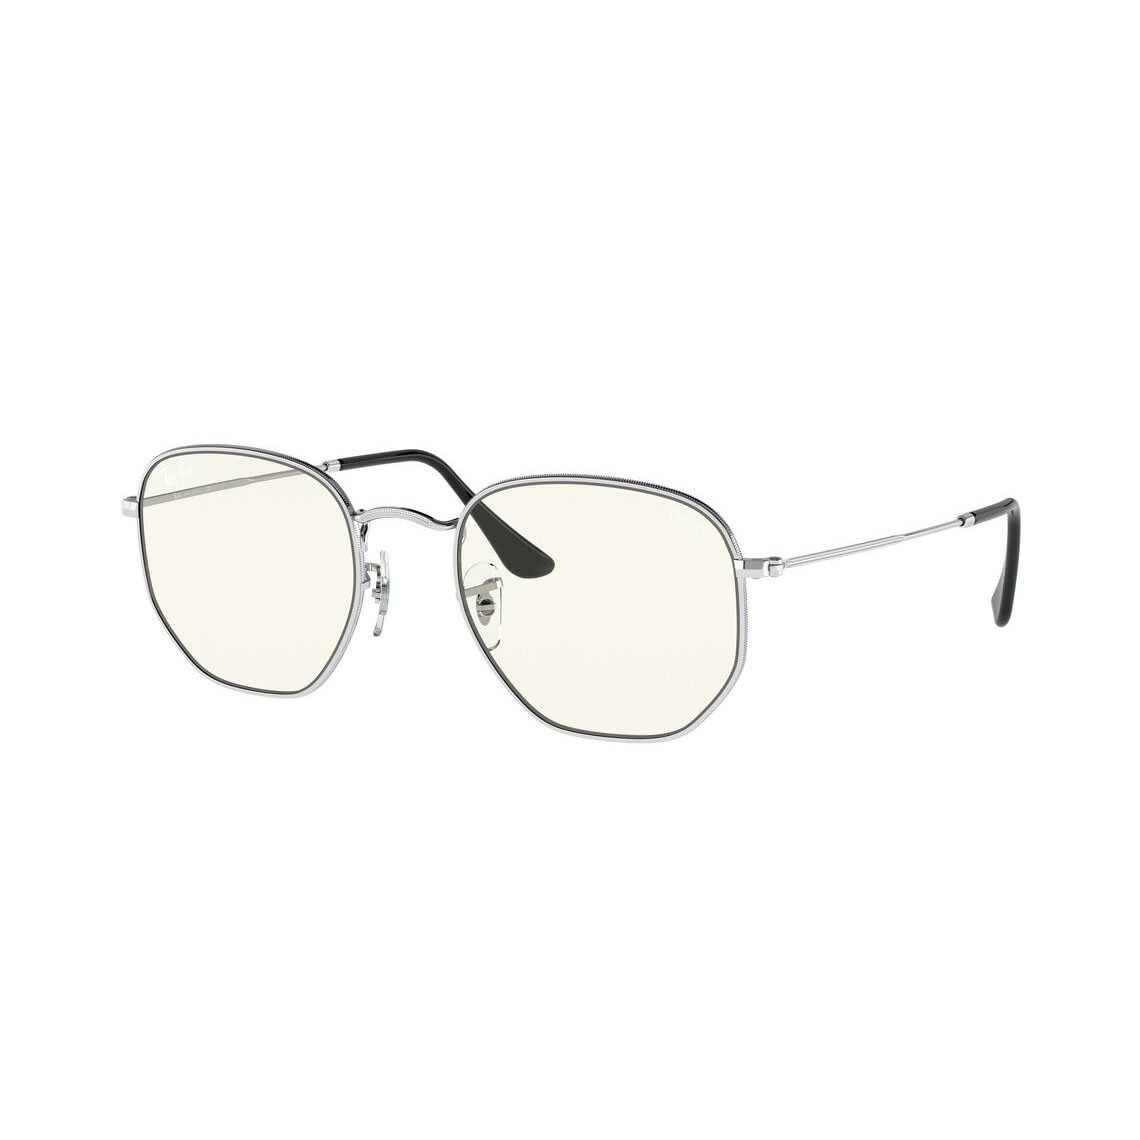 Ray-Ban 0RB3548 003/BL 5421